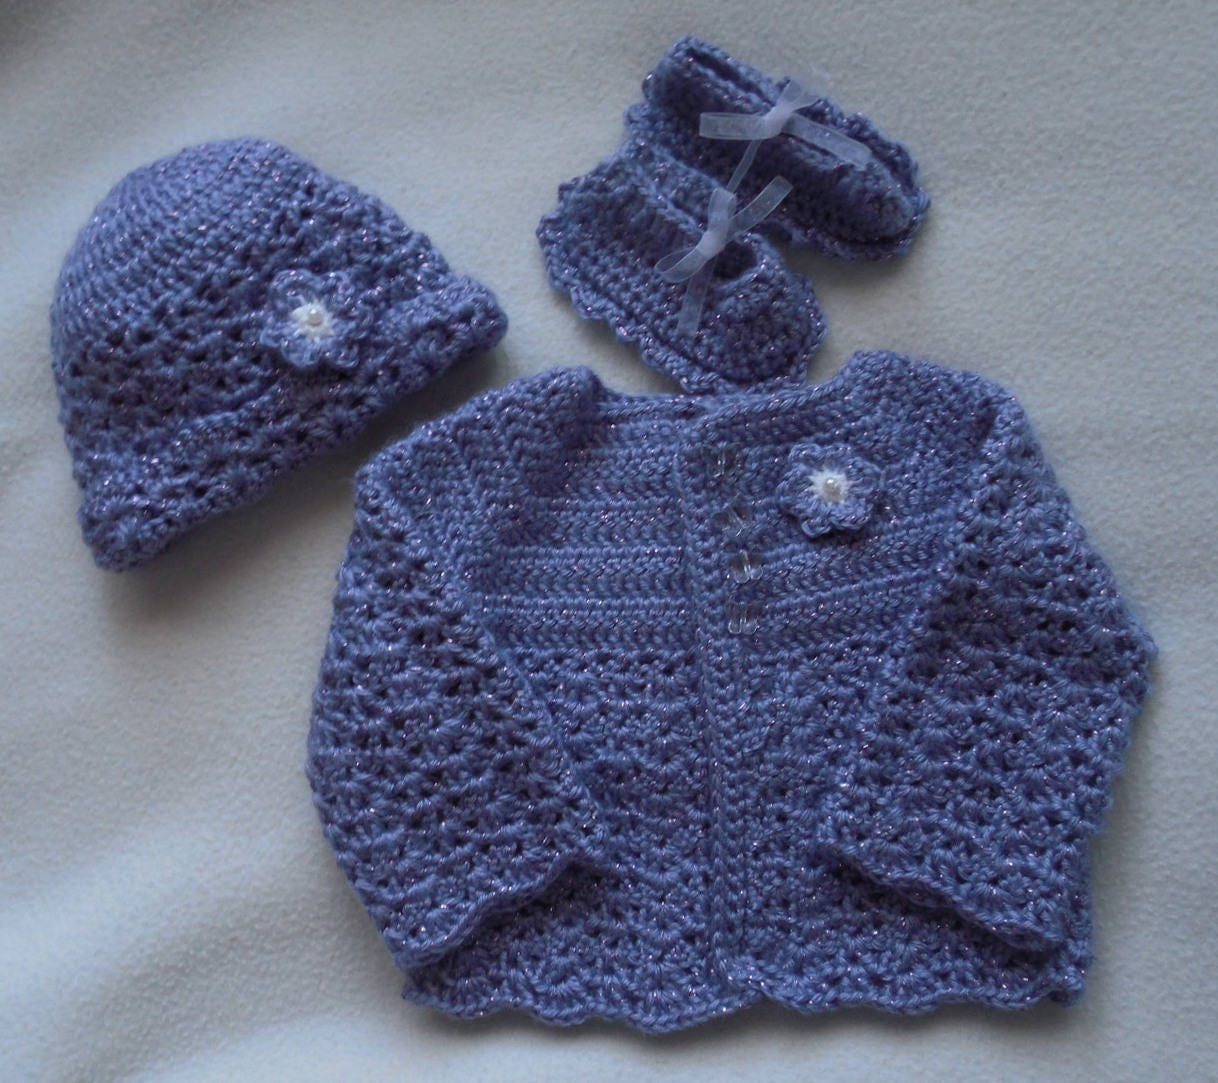 Crochet baby sweater lilac baby sweater lavendar baby sweater